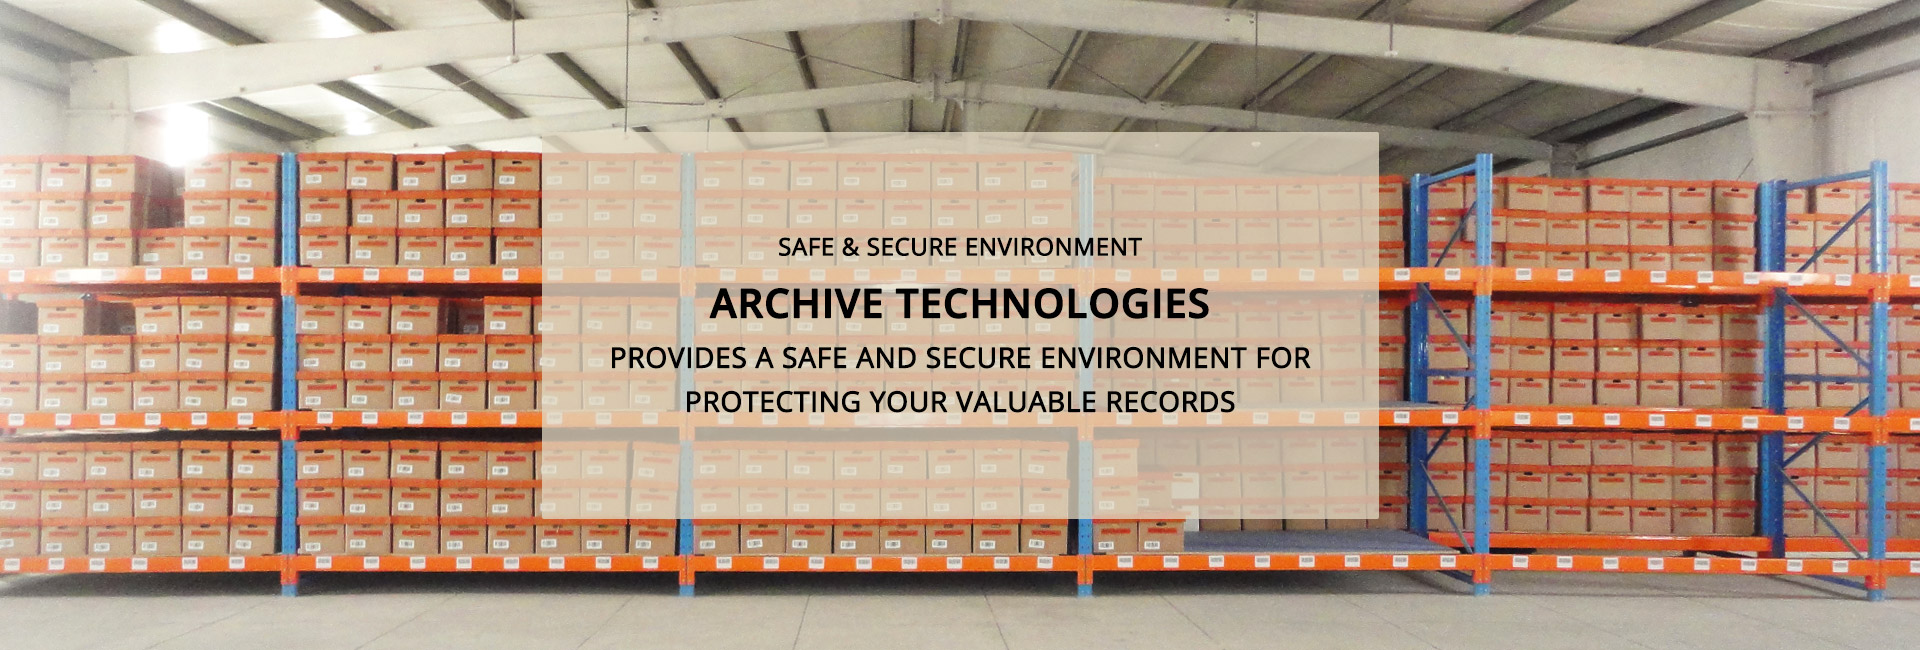 Digitize & Archive Company's Documents by Outsourcing these Services